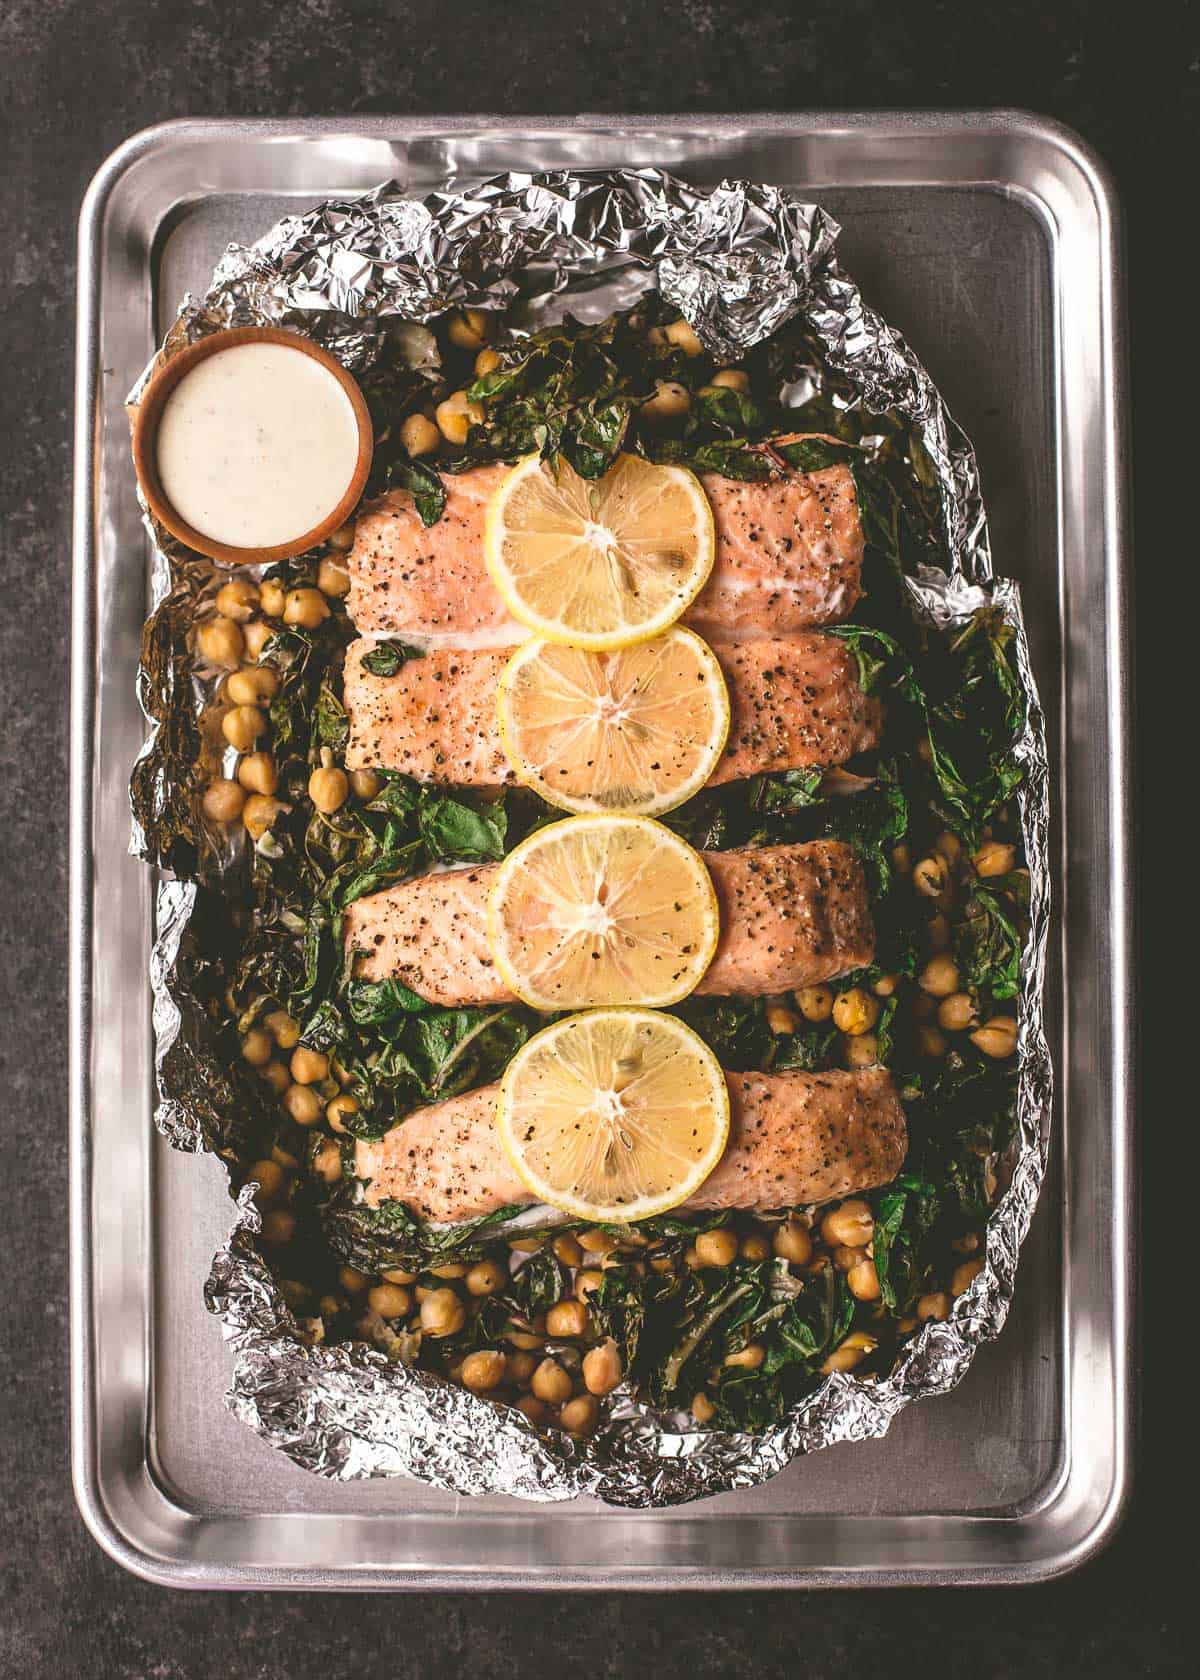 salmon and greens with sauce in foil on a sheet pan